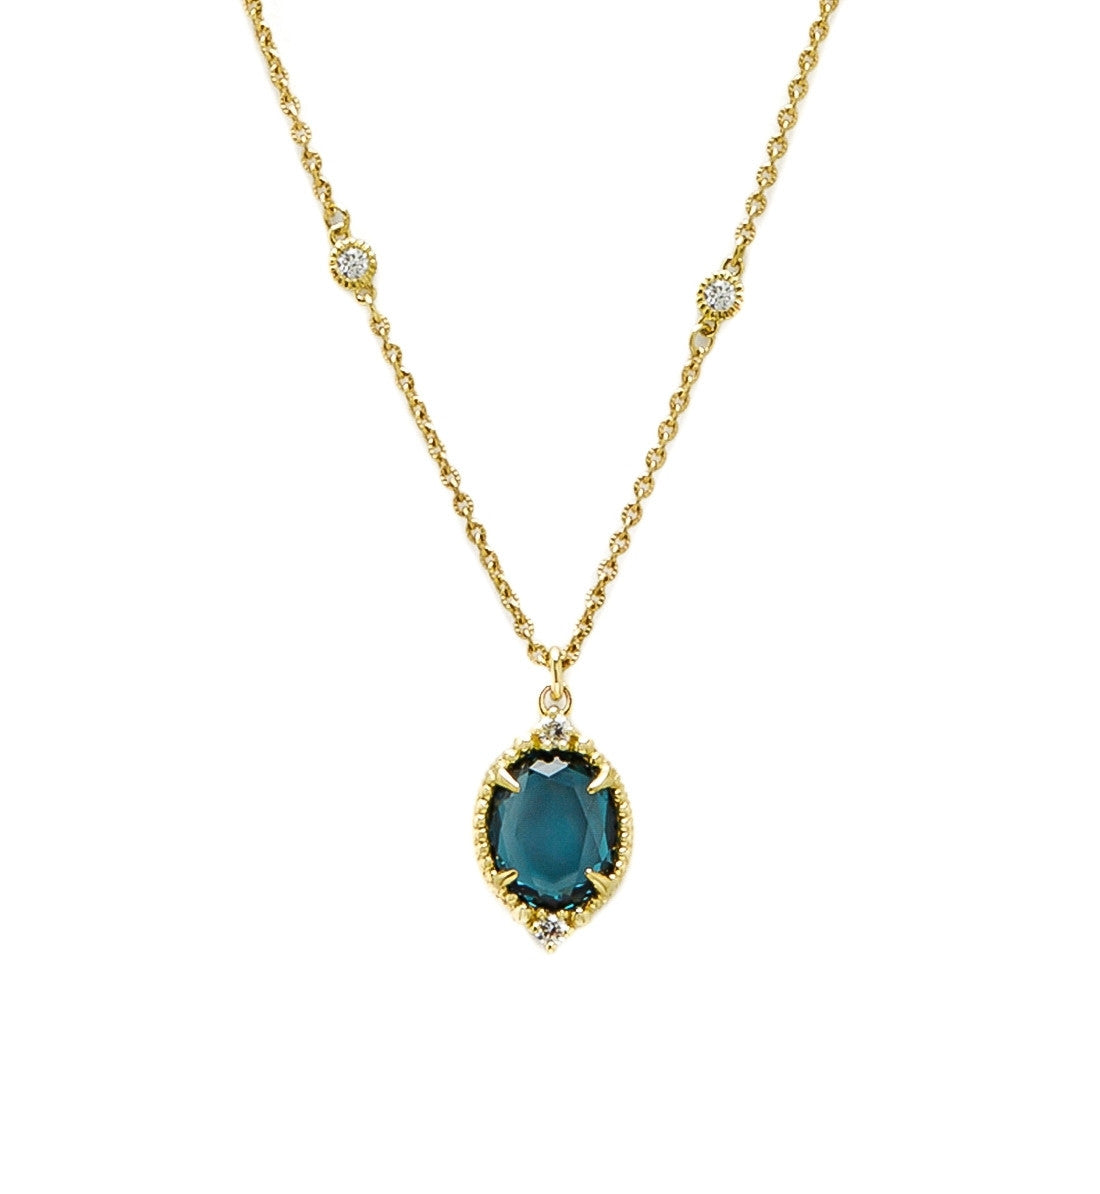 La Petite London Blue Spinel Oval Pendant Necklace - Judith Ripka -  Necklace - Ora by D'Amore Jewelers - 1